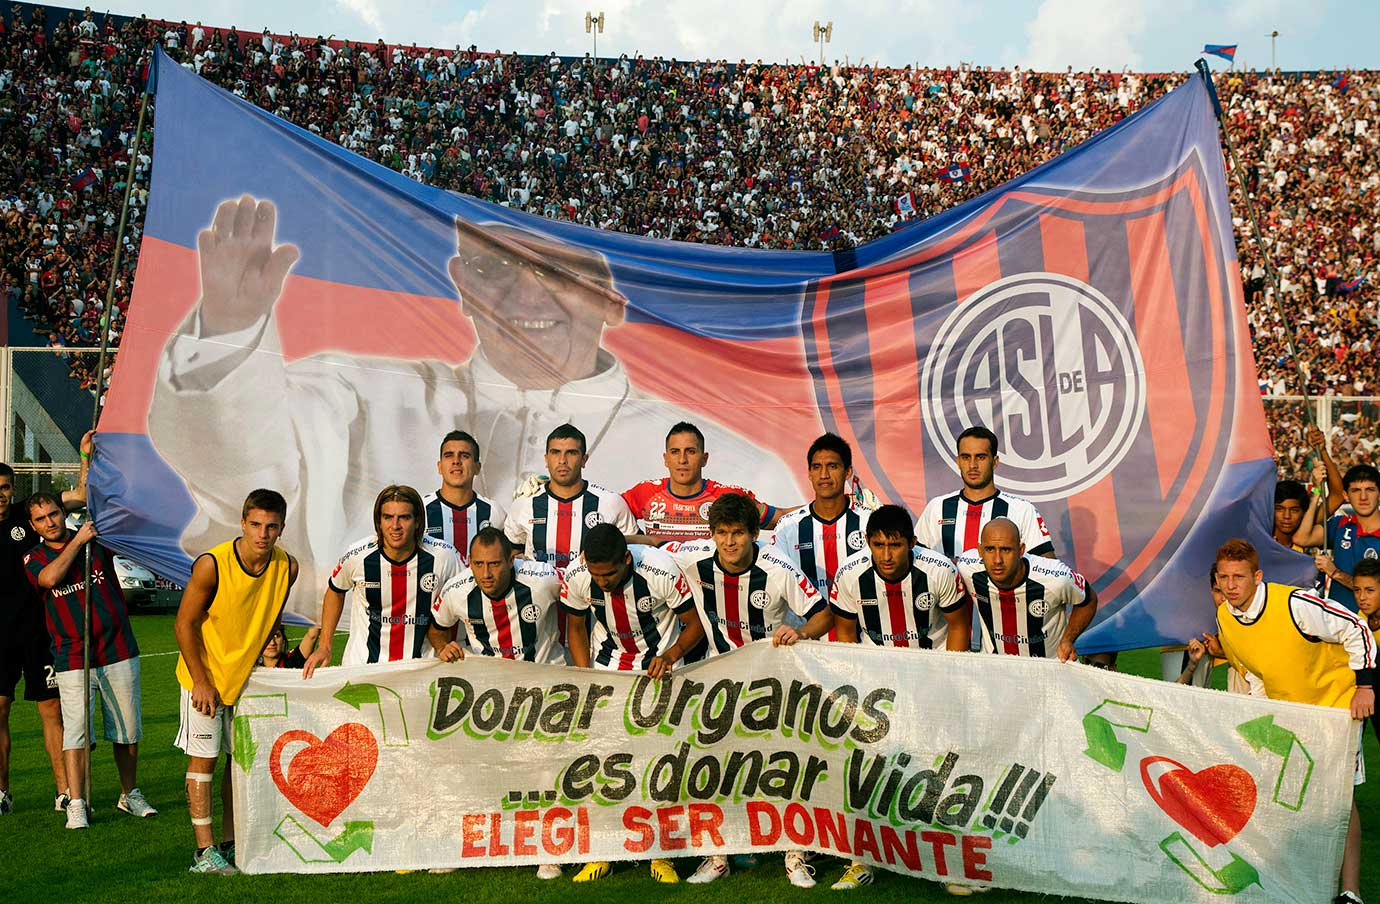 Argentina's San Lorenzo team poses with a huge flag behind them with an image of Pope Francis before the start of their match against Newell's Old Boys on March 31, 2013 in Buenos Aires.